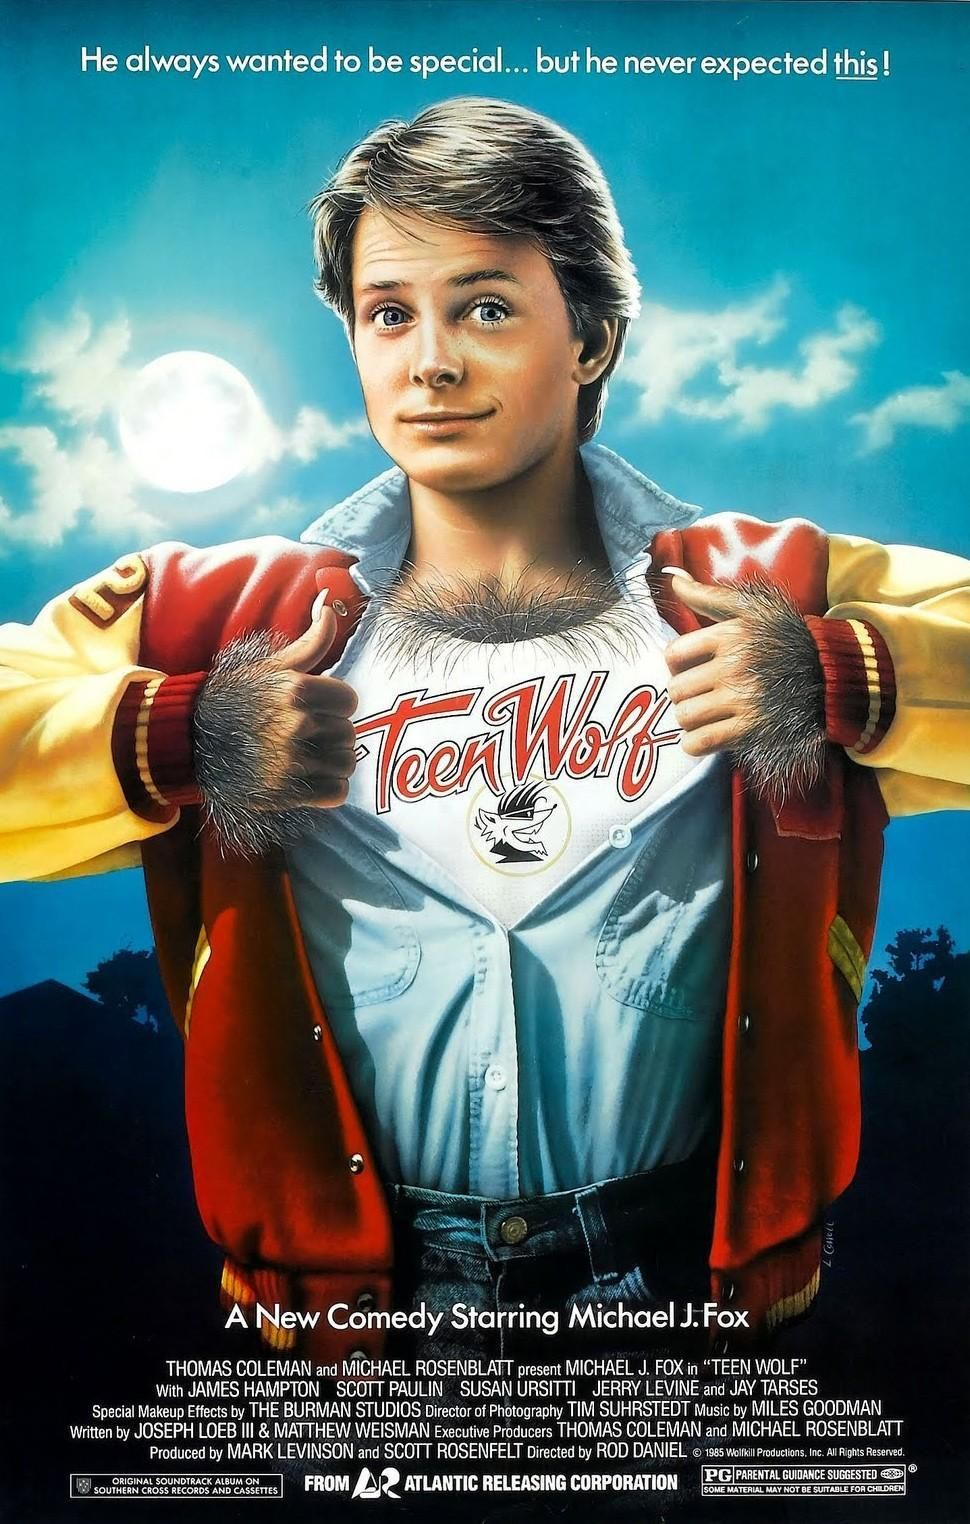 Teen Wolf.  Michael J. Fox.  Quadruple doubles, Wolfmobile surfing, and a girl named Boof.